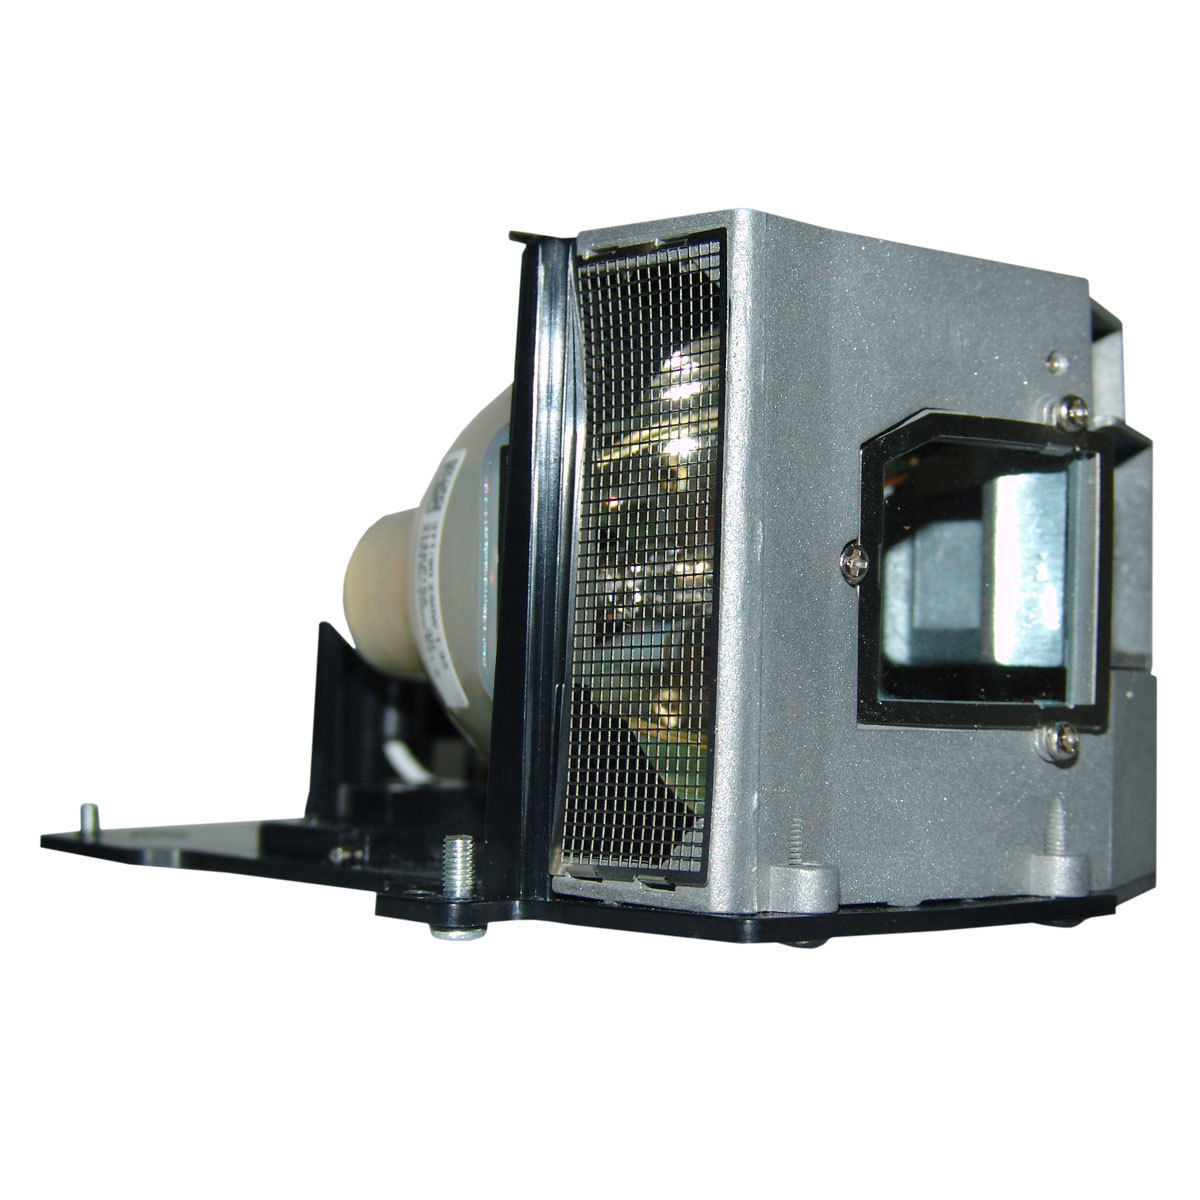 Projector Lamp Bulb BL-FP300A BLFP300A SP.85Y01GC01 for OPTOMA EP759 EP780 DX800 EP781 TX780 with housingProjector Lamp Bulb BL-FP300A BLFP300A SP.85Y01GC01 for OPTOMA EP759 EP780 DX800 EP781 TX780 with housing